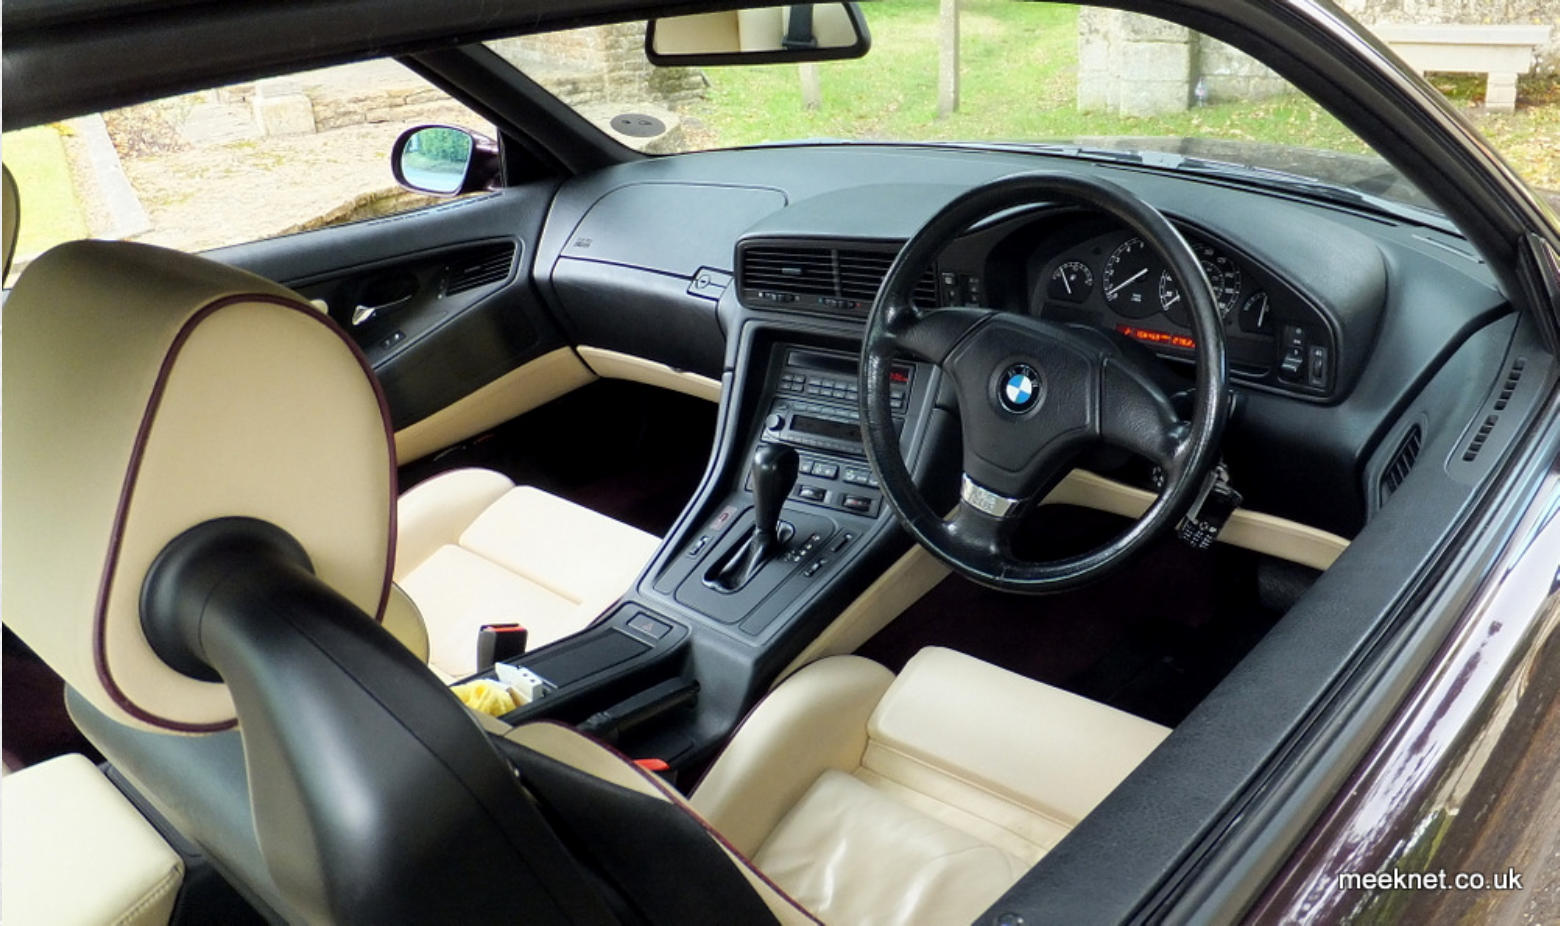 ... this increased the desirability of the few Individual examples that  came onto the market. The same is not true for the E31, especially the  840ci.